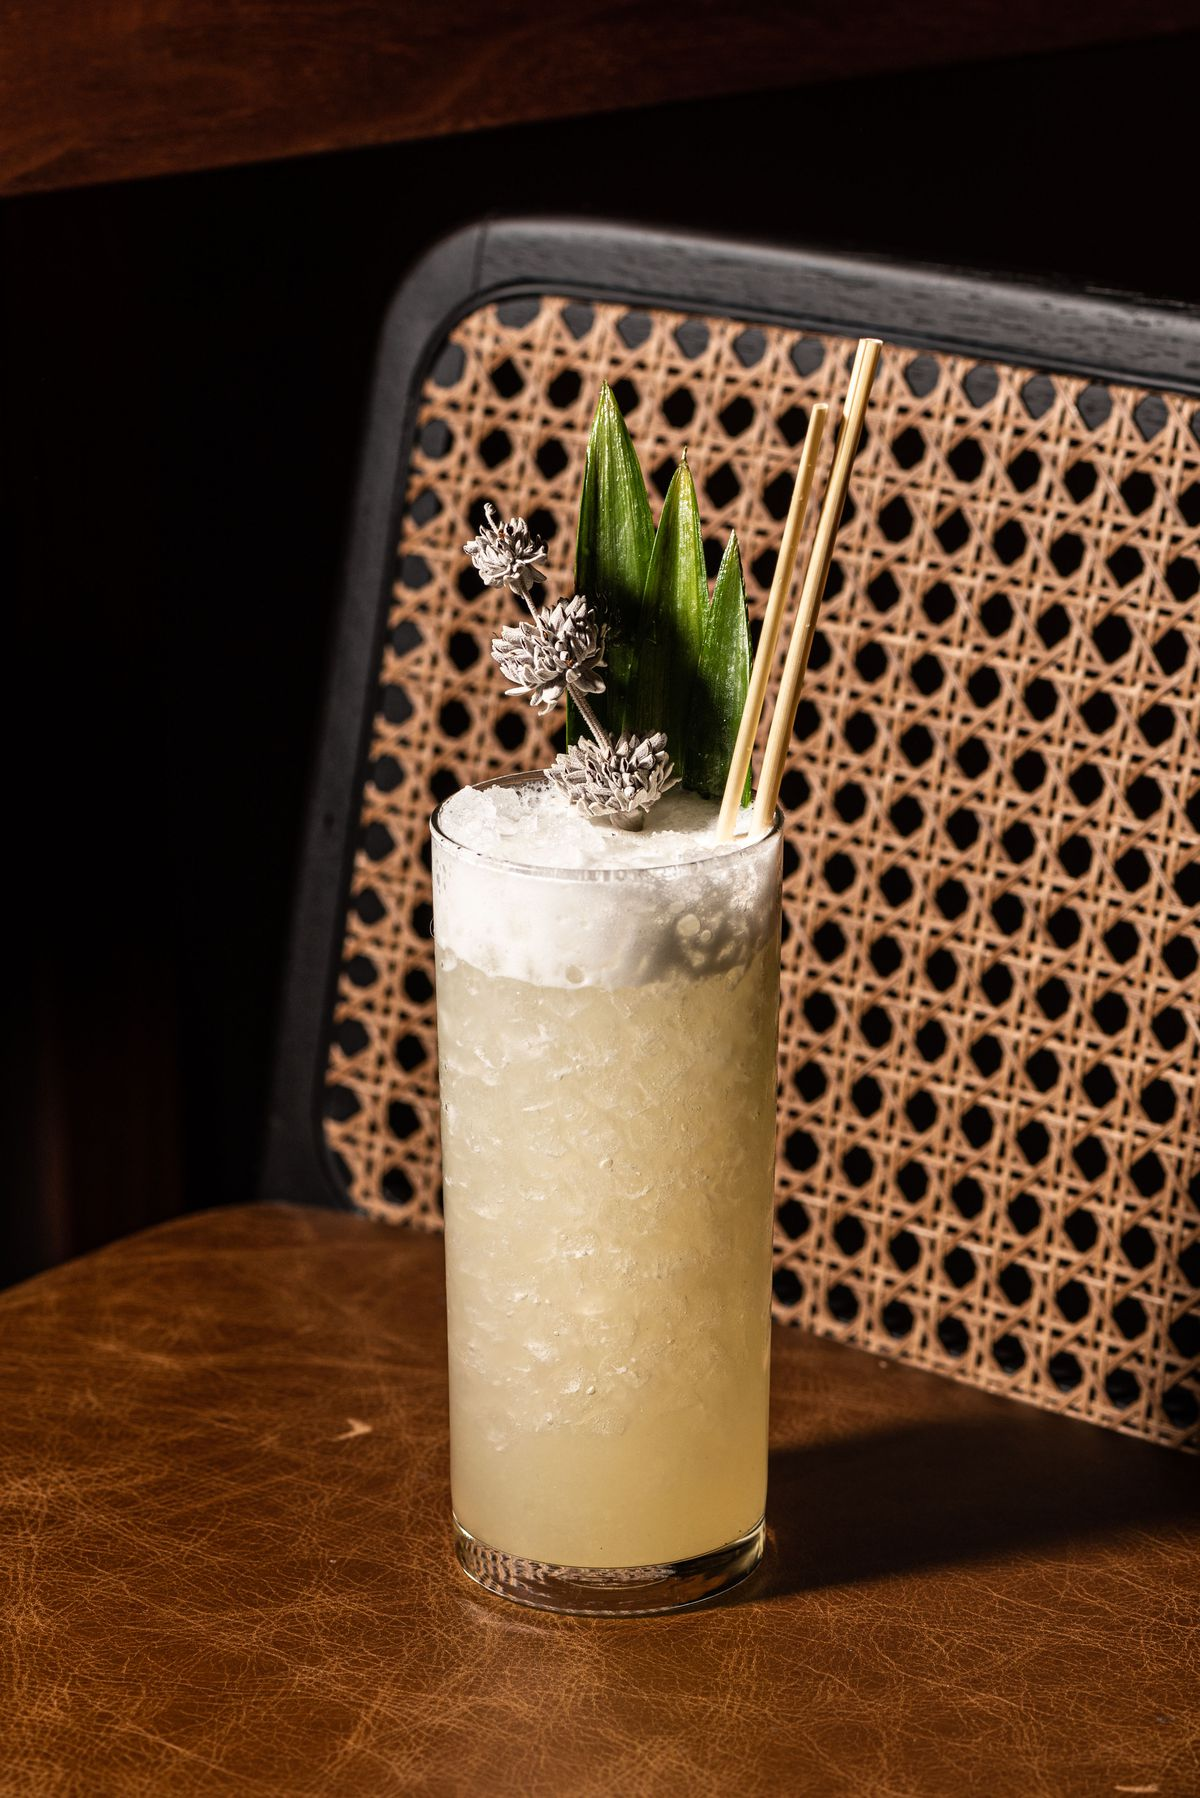 A tiki-style cocktail drink in a tall glass with a wicker chair beyond.